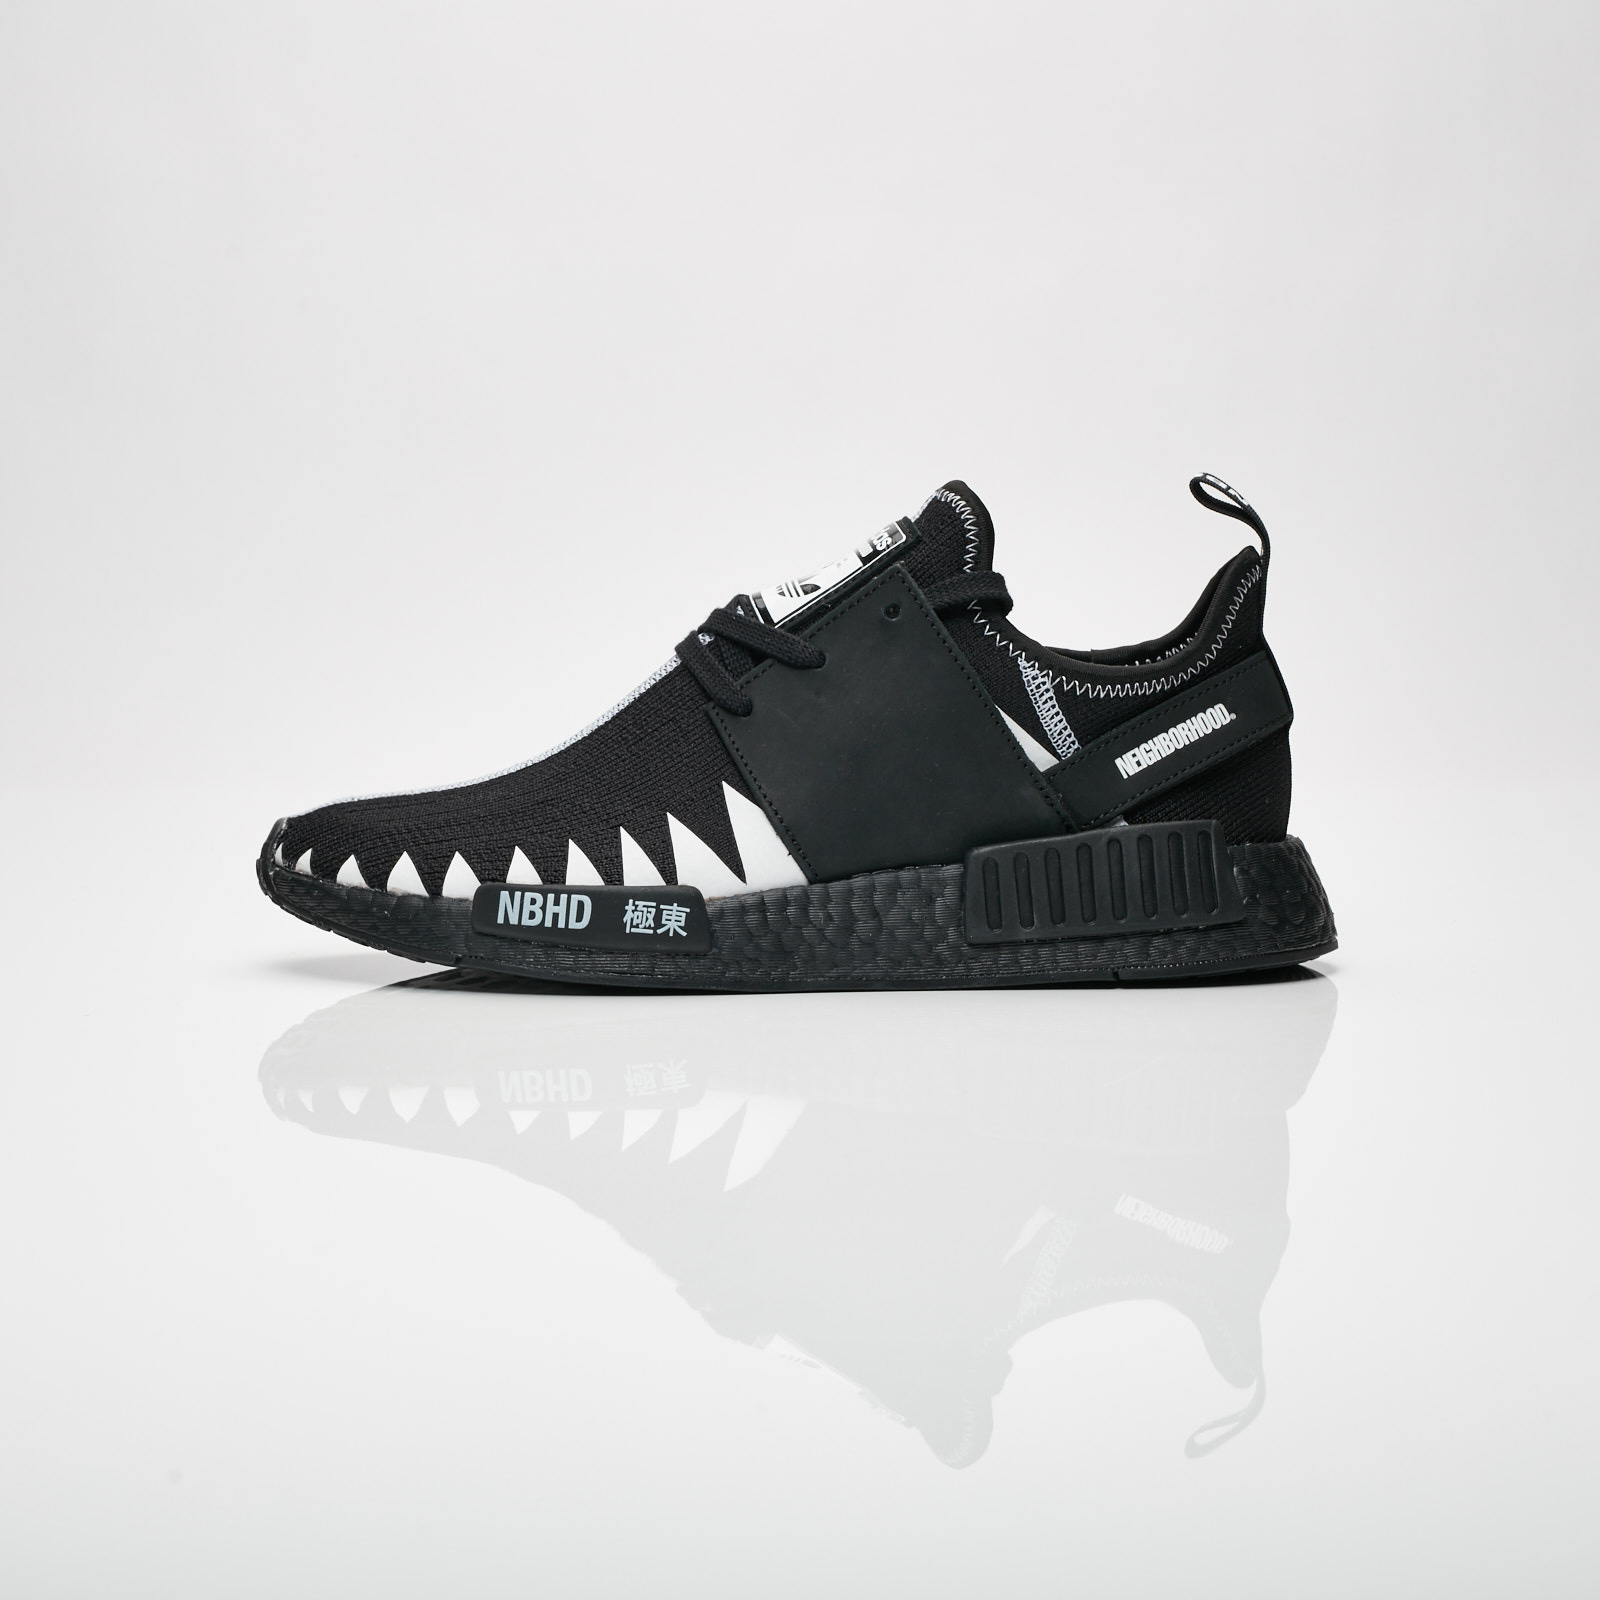 huge discount ddf17 9d8bc adidas NMD R1 PK x Neighborhood - Da8835 - Sneakersnstuff ...